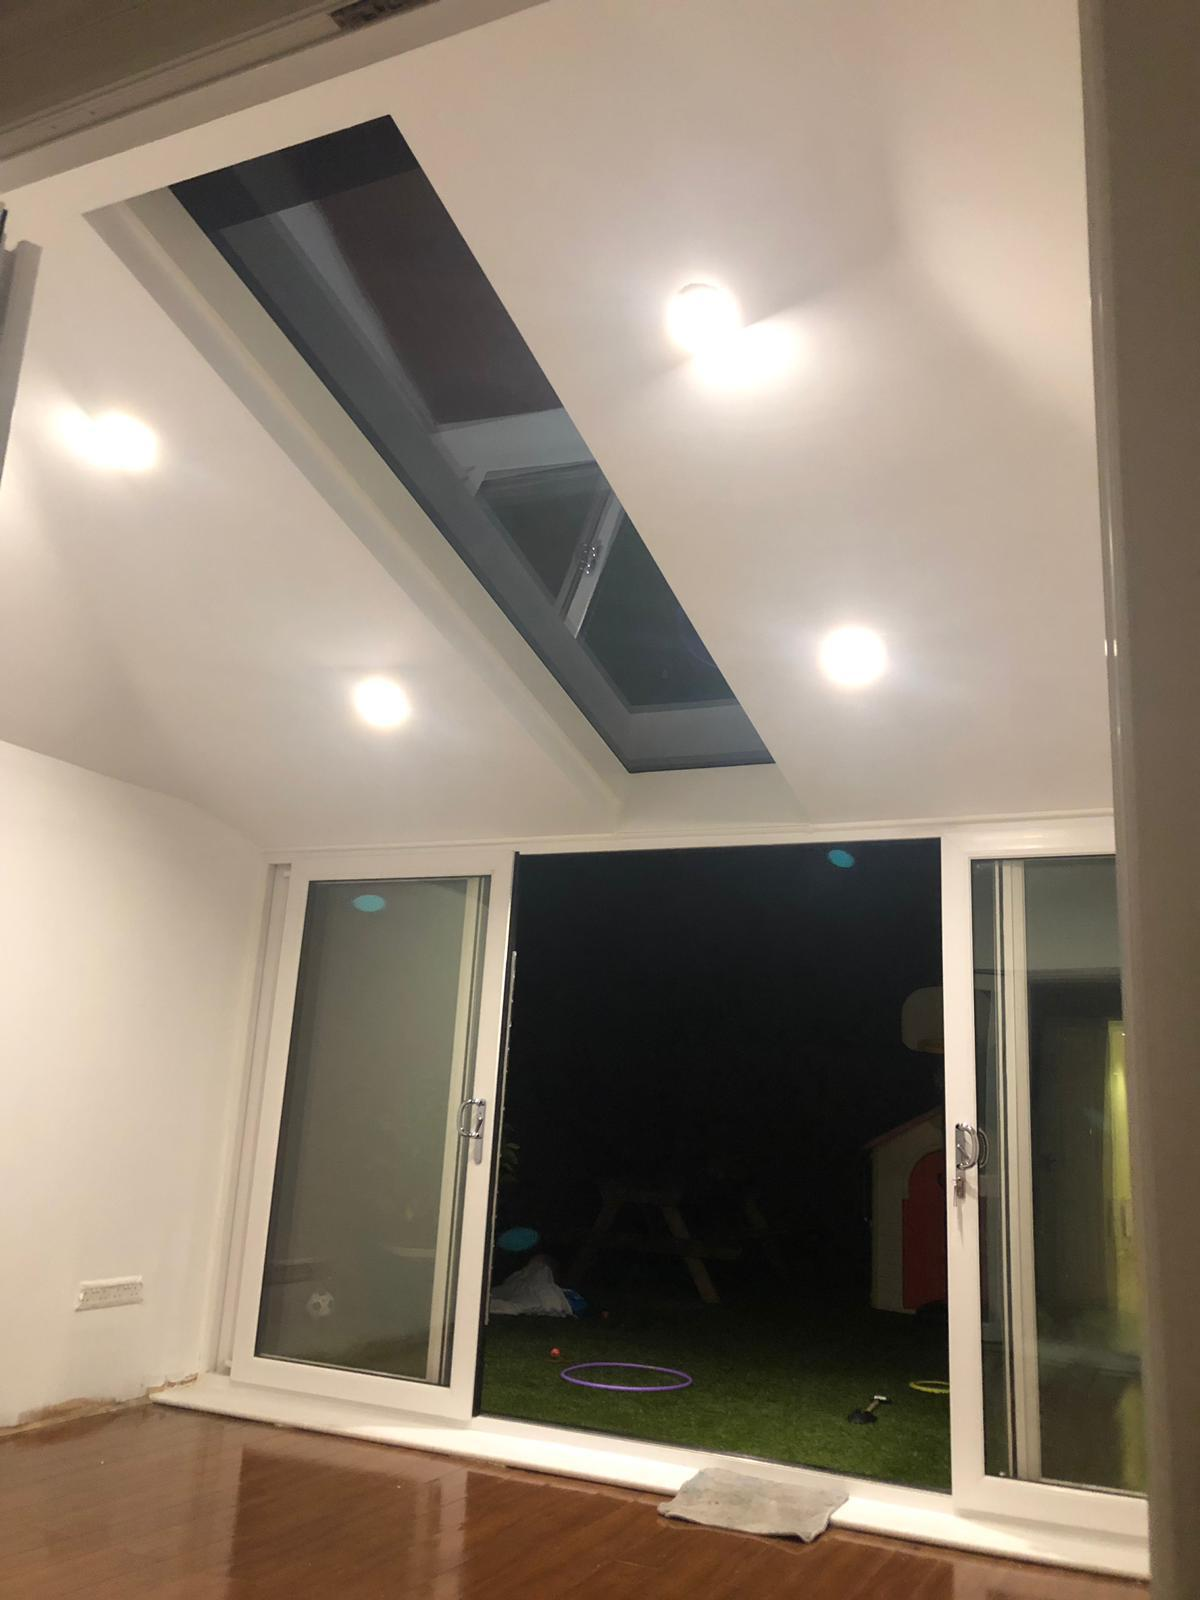 Skylight and White UPVC Windows & Doors in White